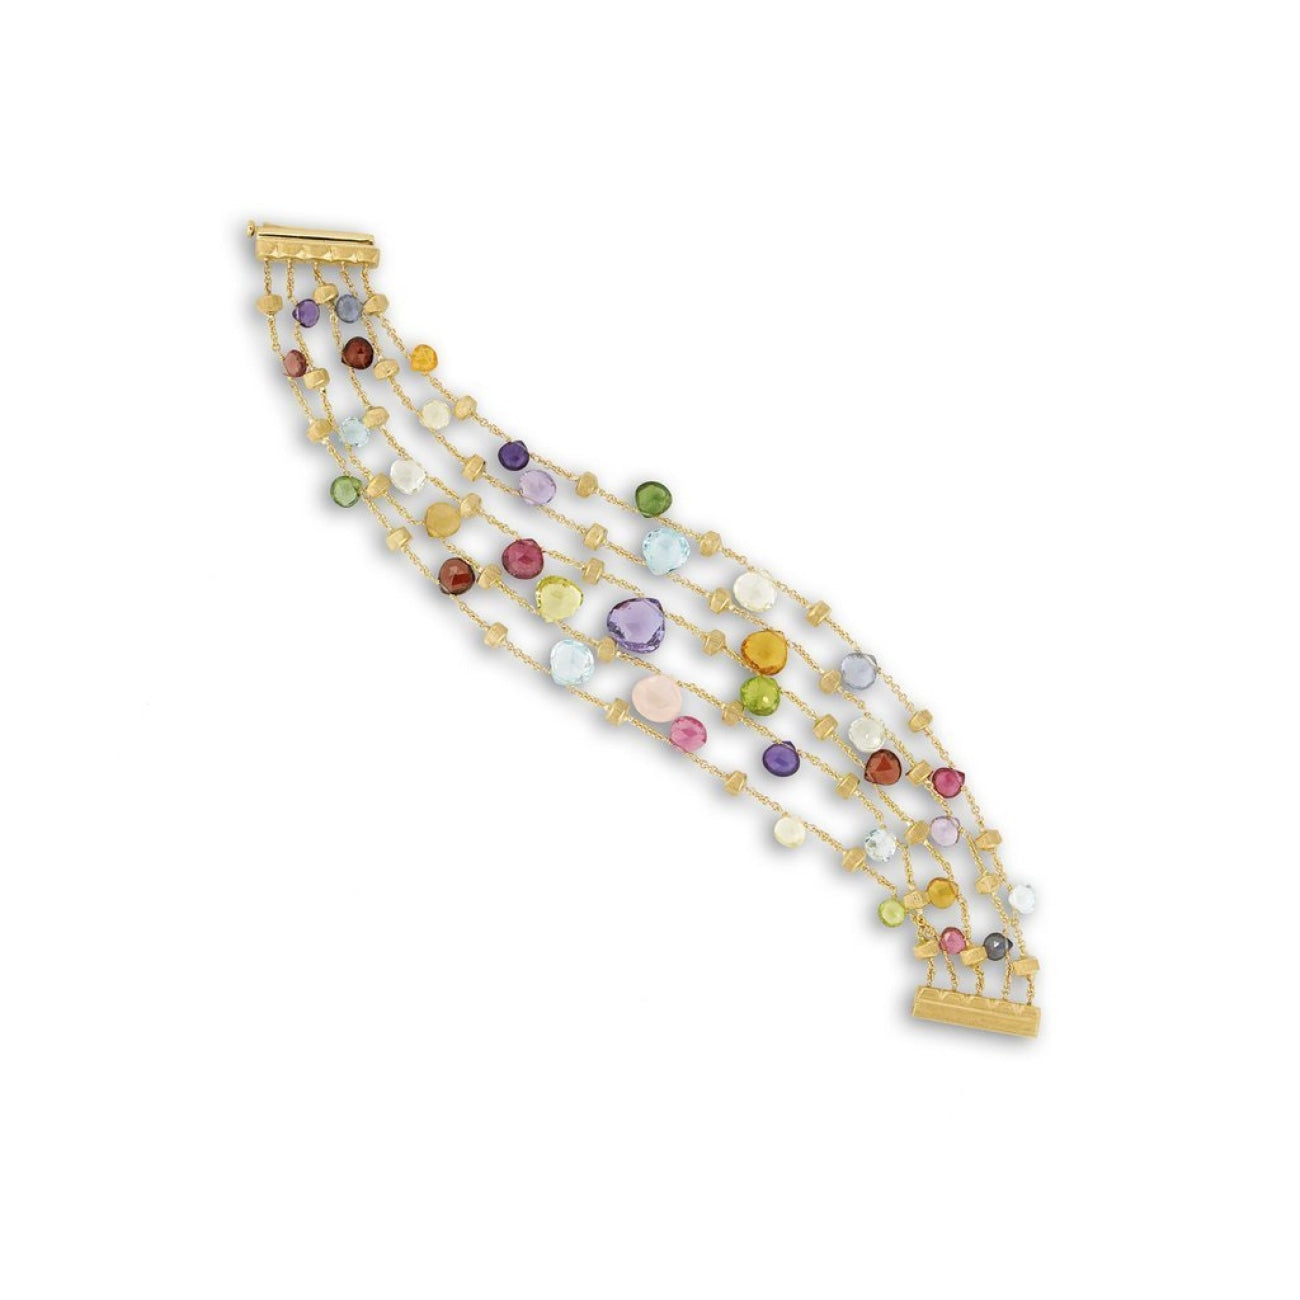 Marco Bicego Jewelry - 18K Yellow Gold & Mixed Stone Five Strand Graduated Bracelet | Manfredi Jewels